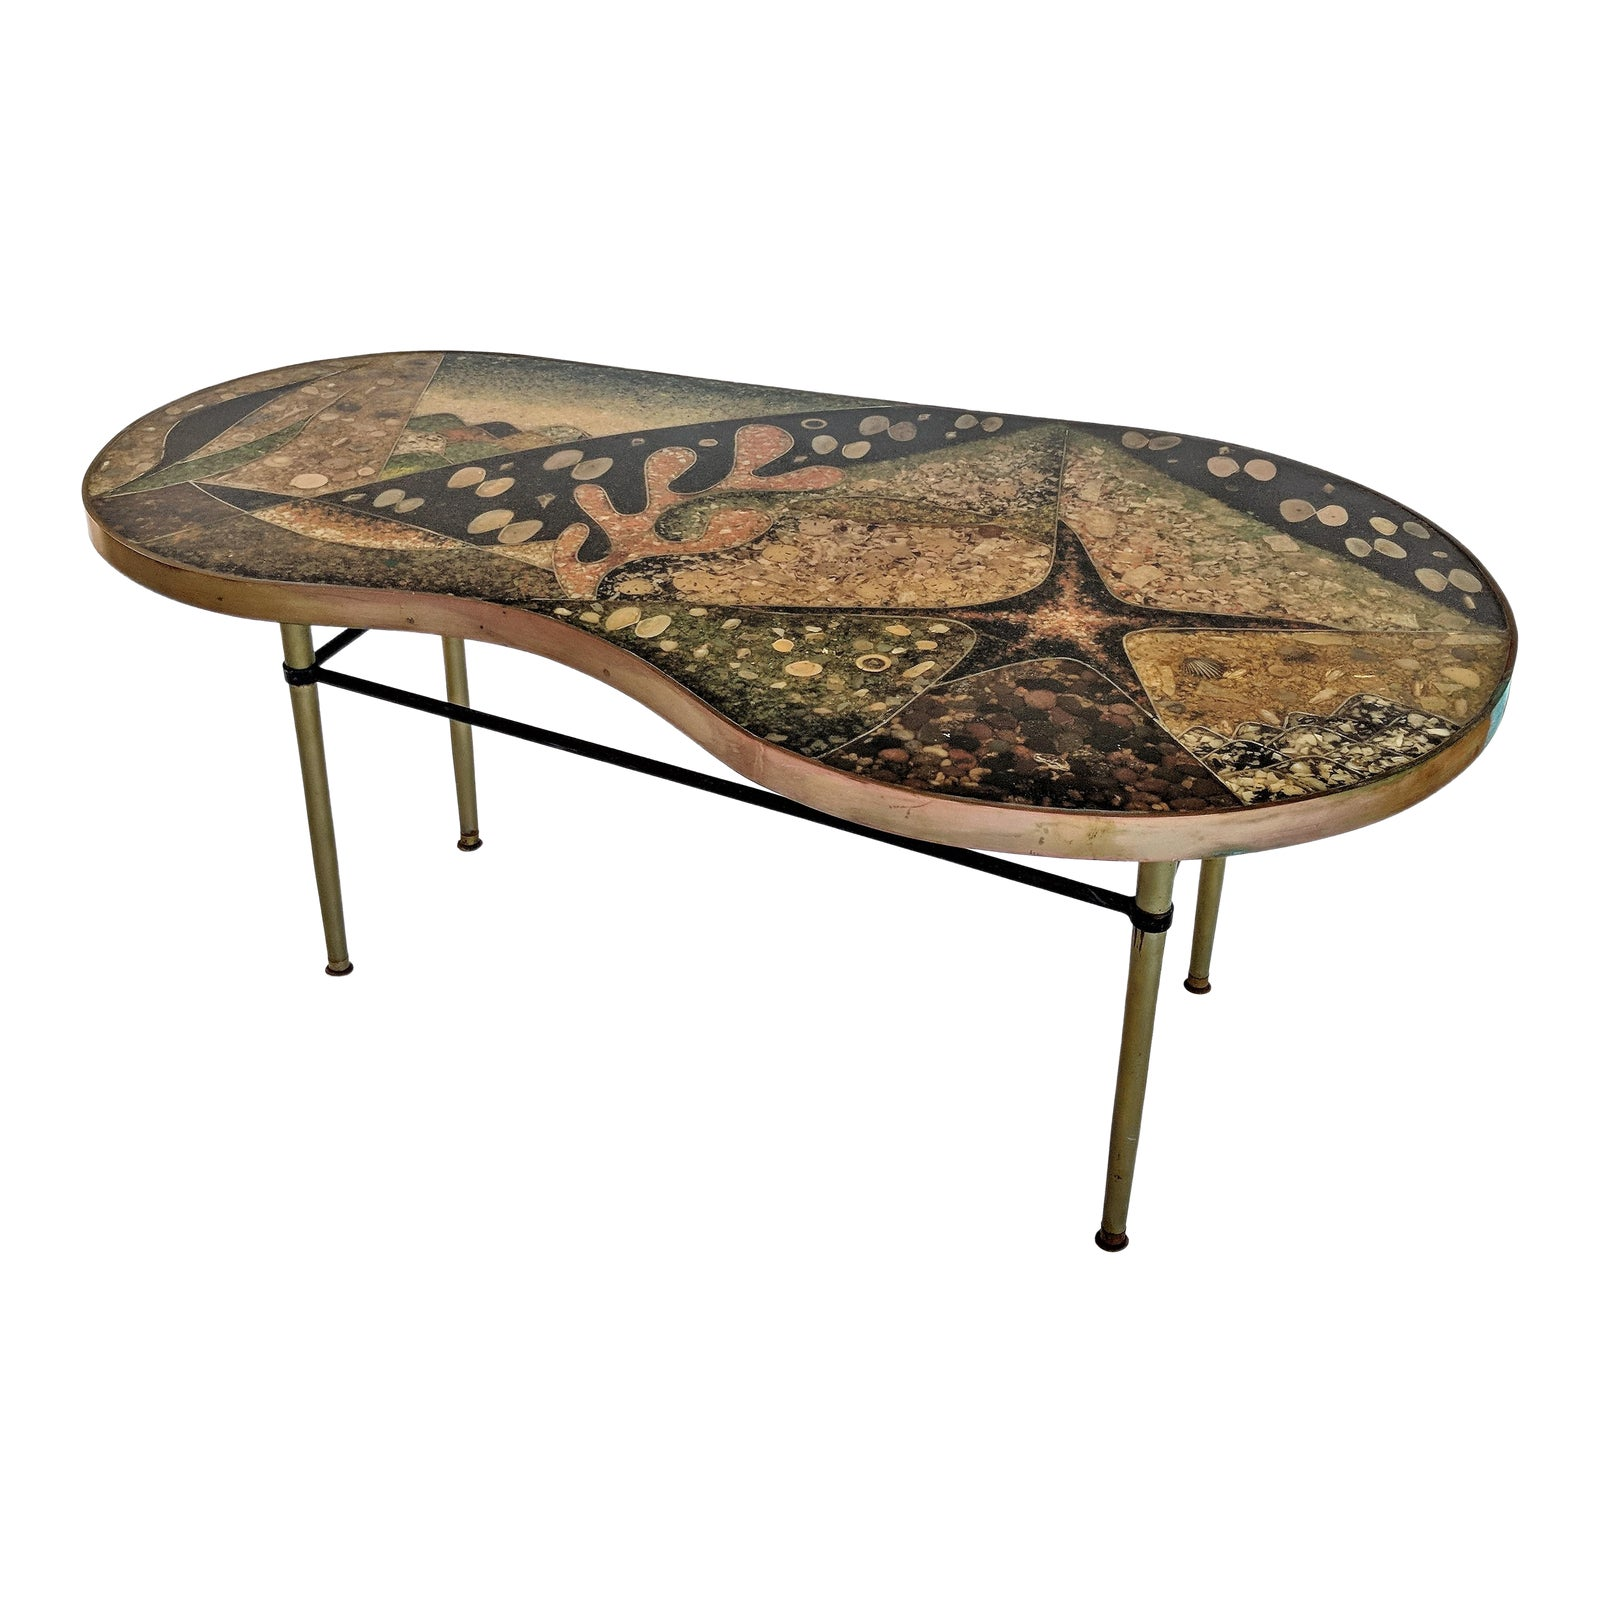 Modern Copper Coffee Table: 1957 Mid-Century Modern Inlaid Copper, Resin, Shell And